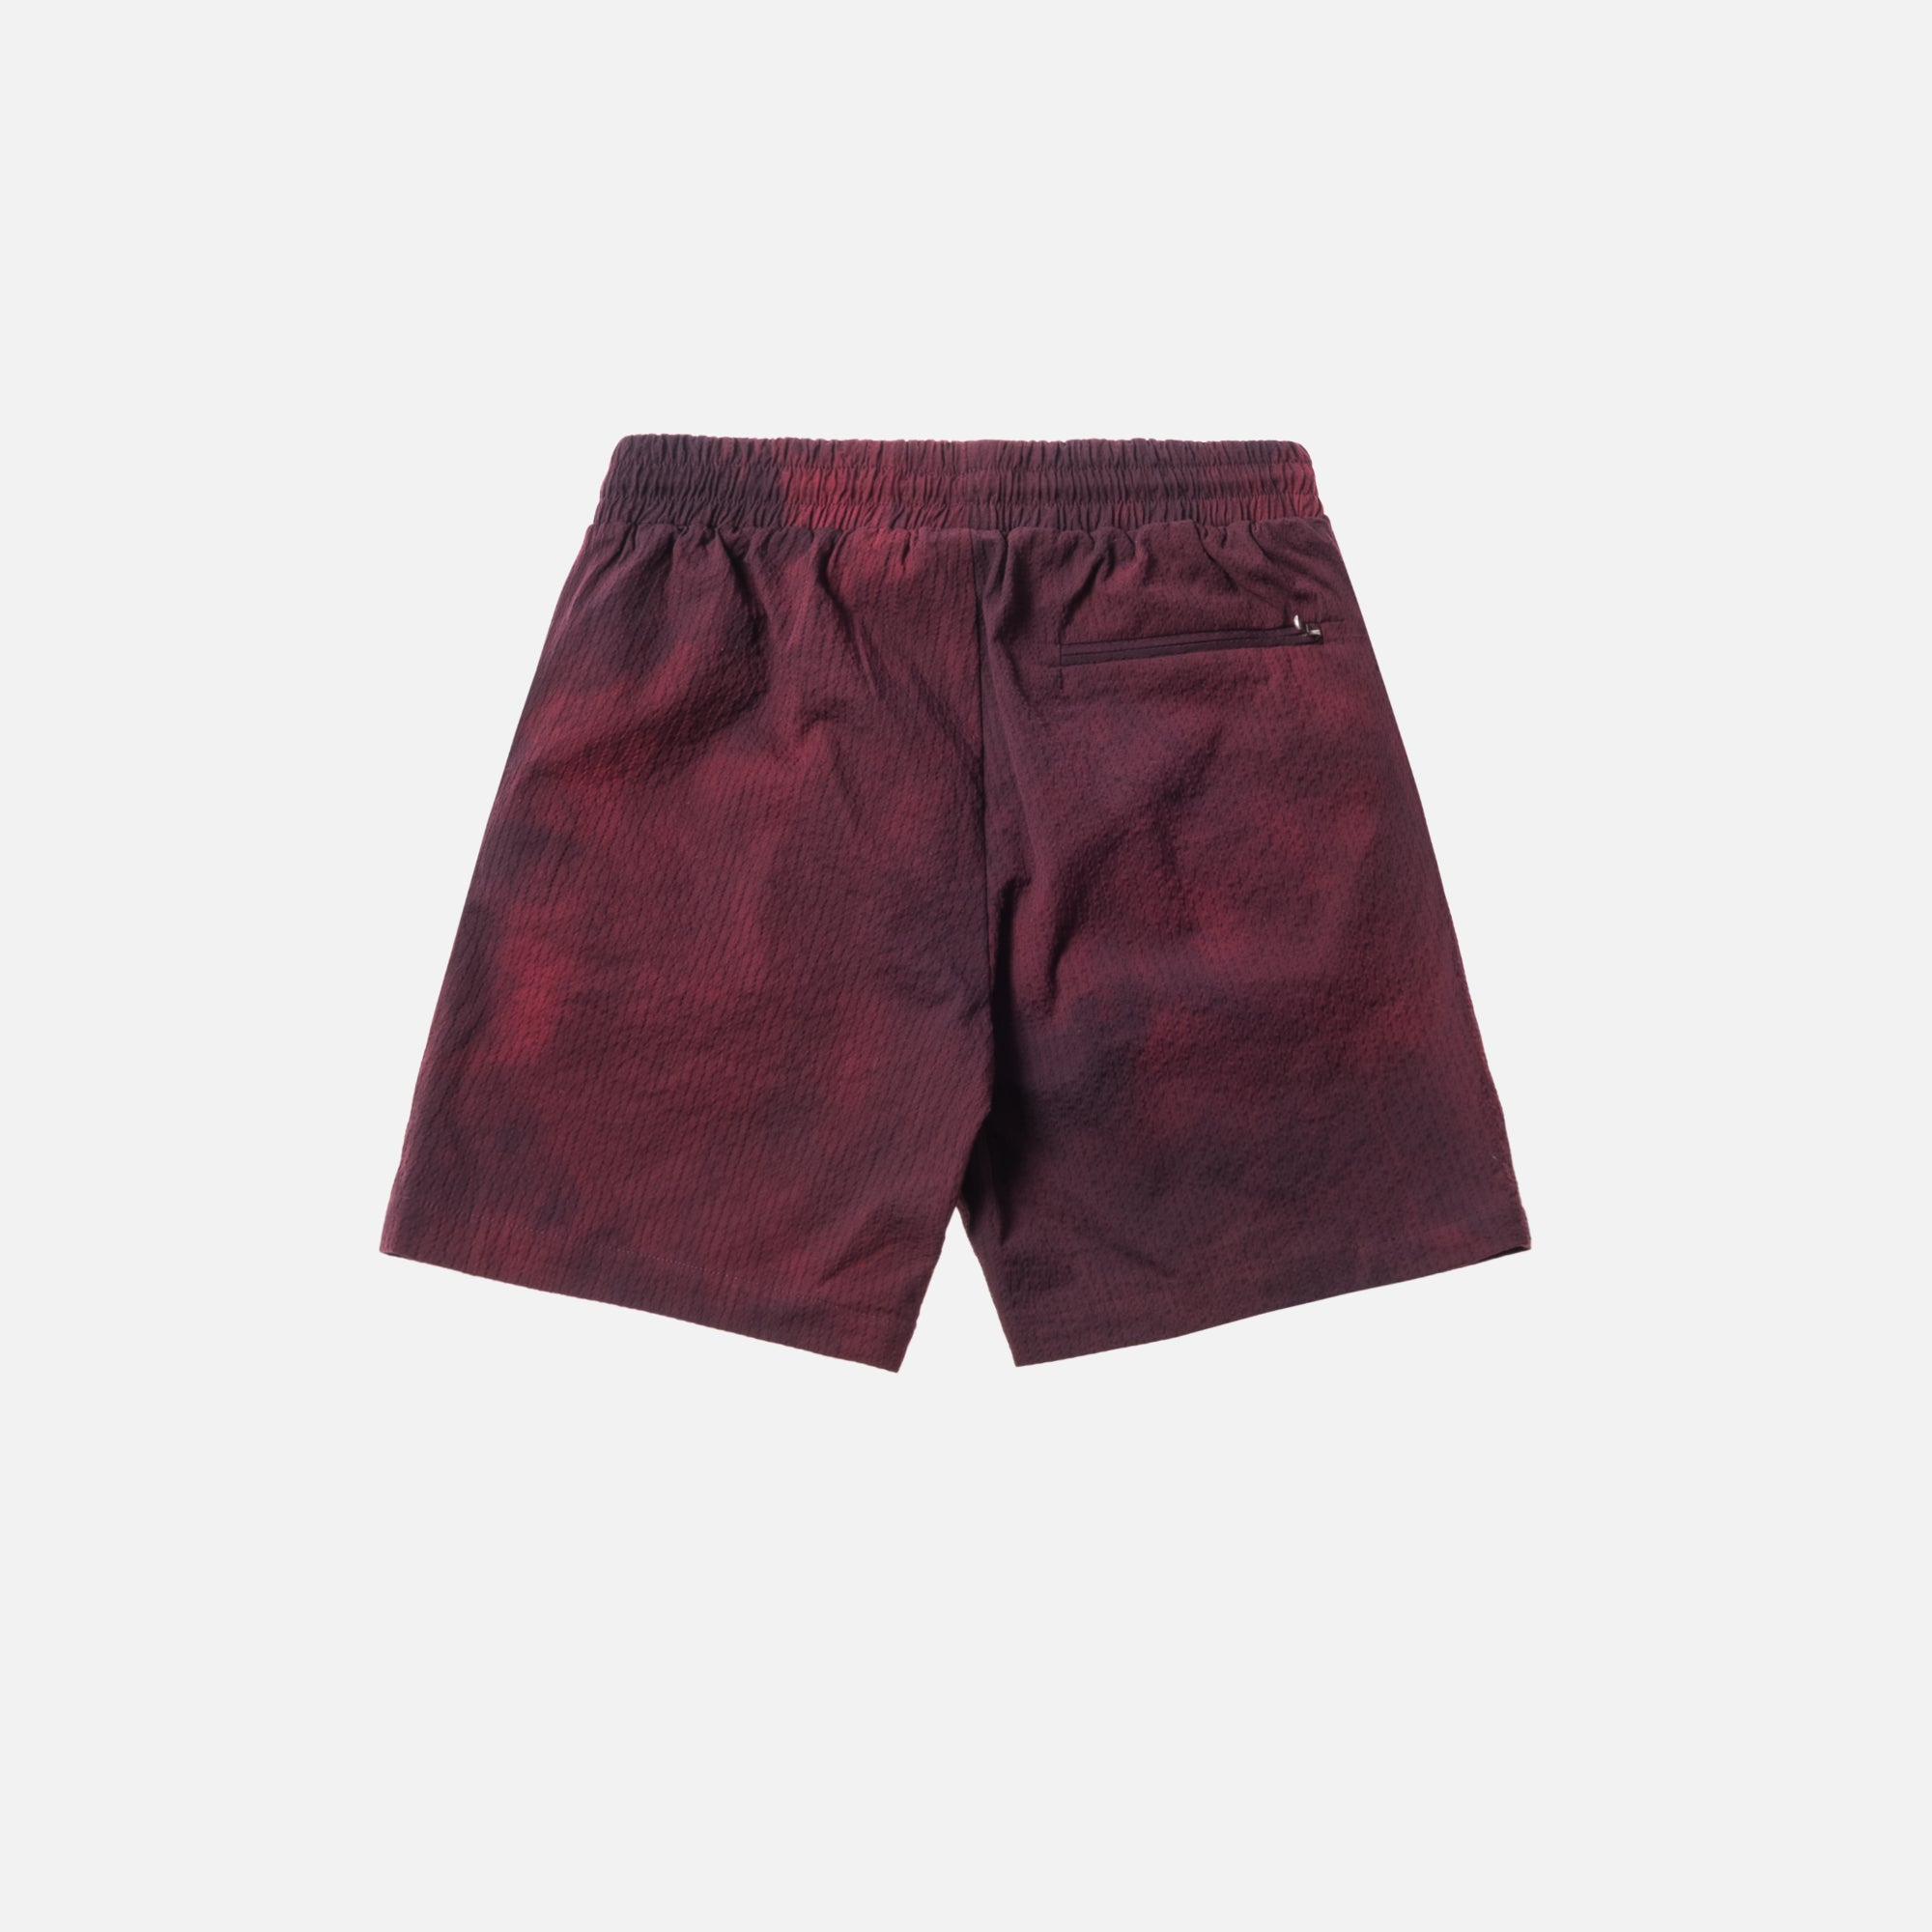 Aimé Leon Dore Leisure Shorts - Multi / Burgundy